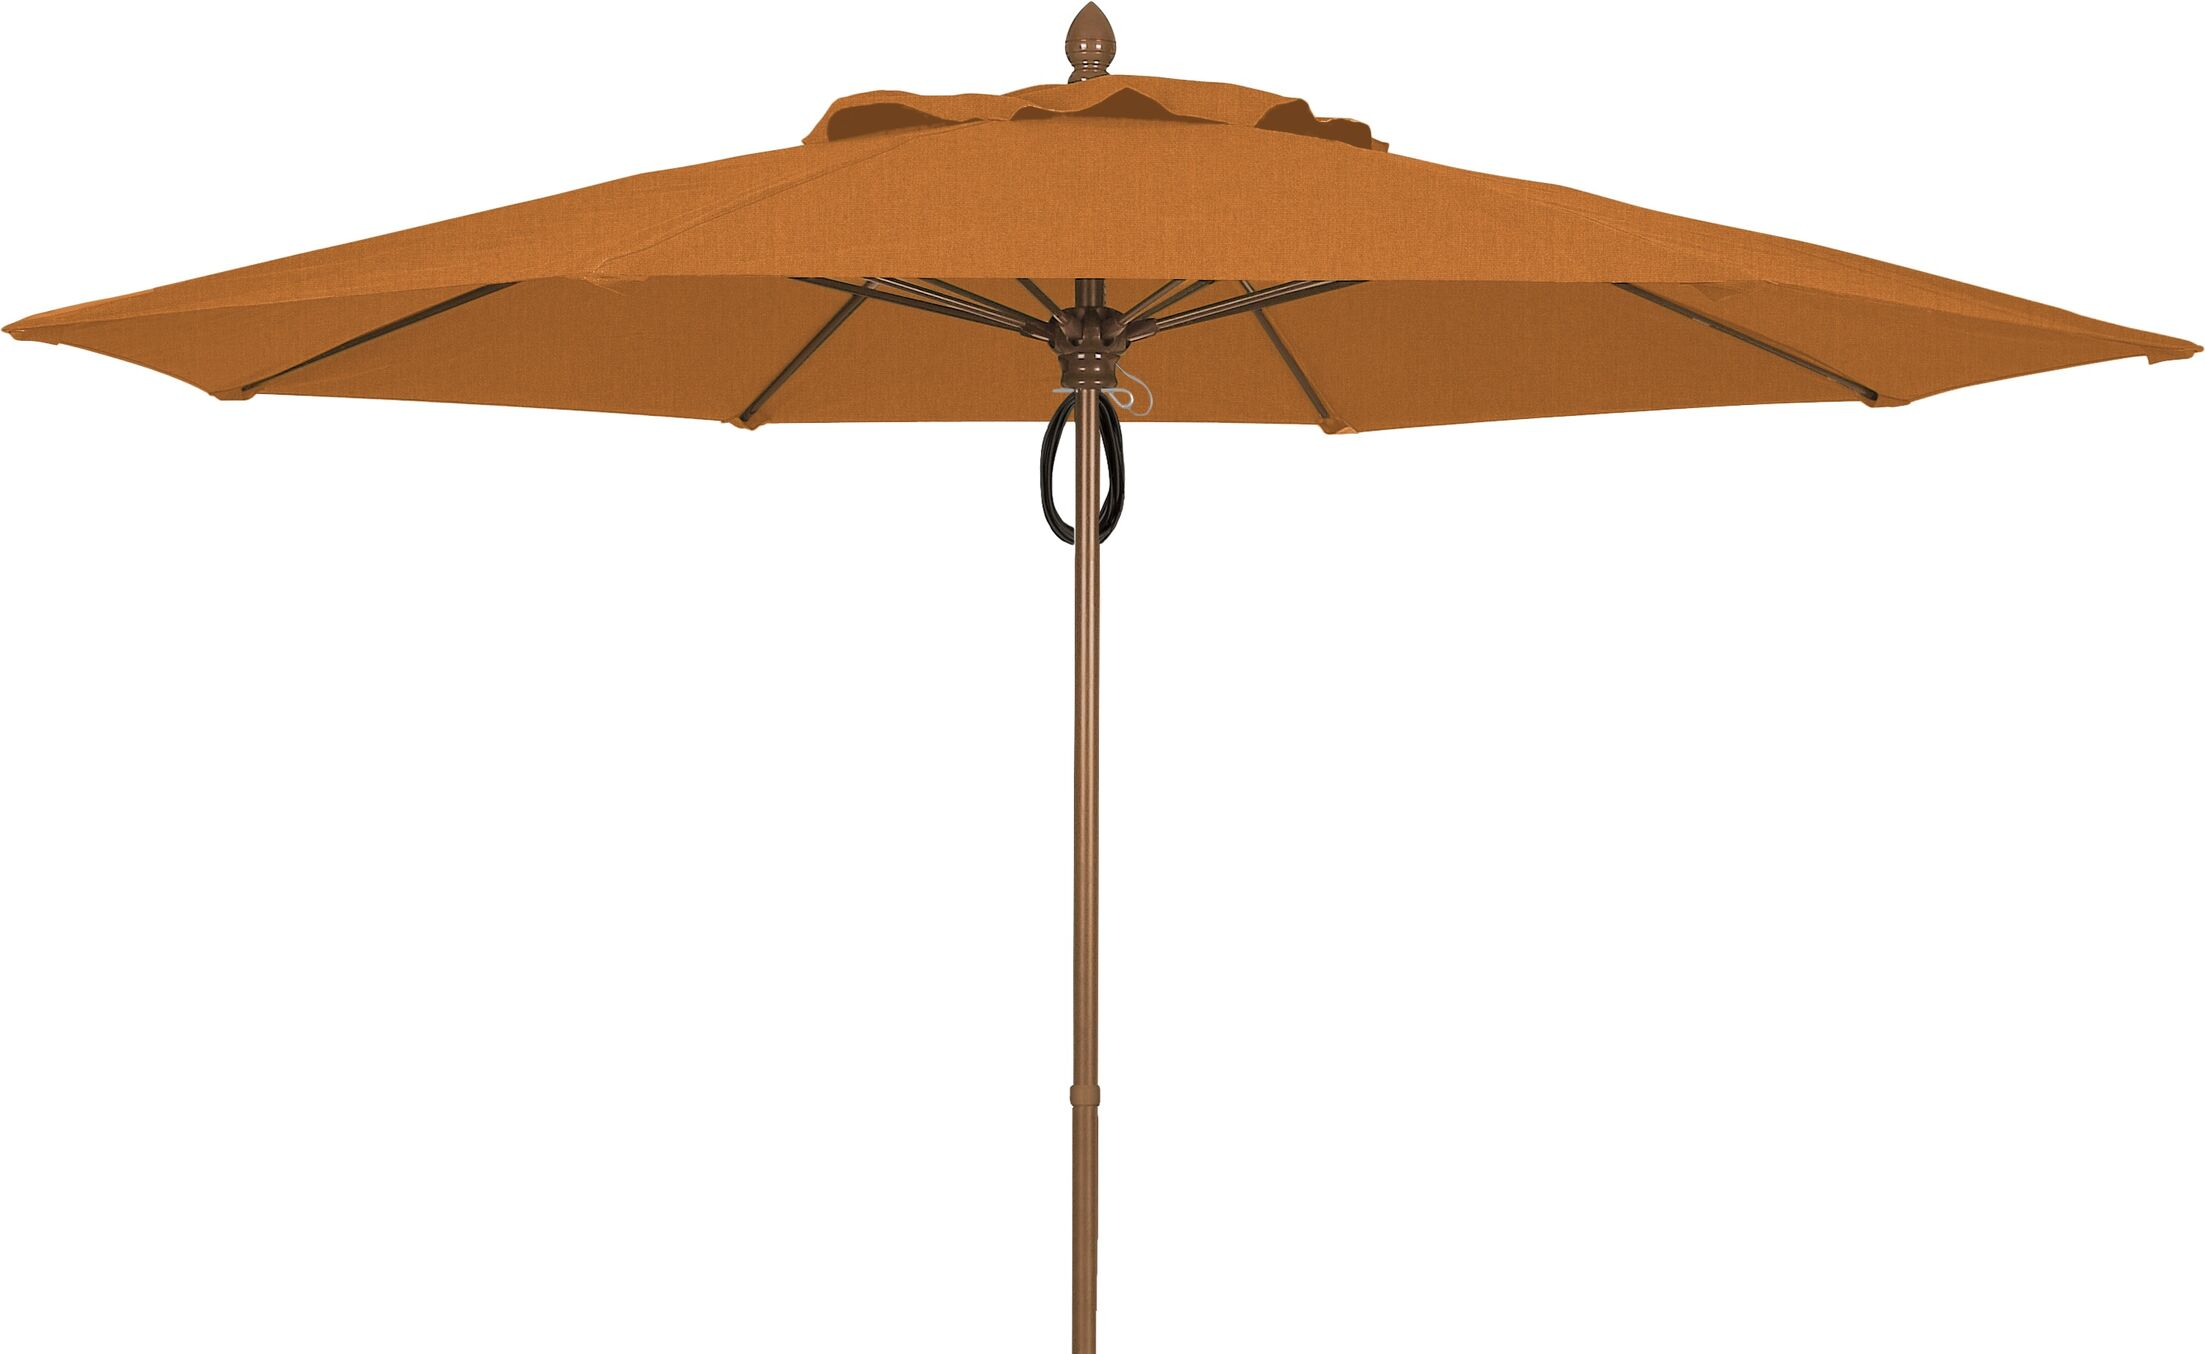 Prestige 11' Market Umbrella Frame Finish: Champagne Bronze, Fabric: Tan